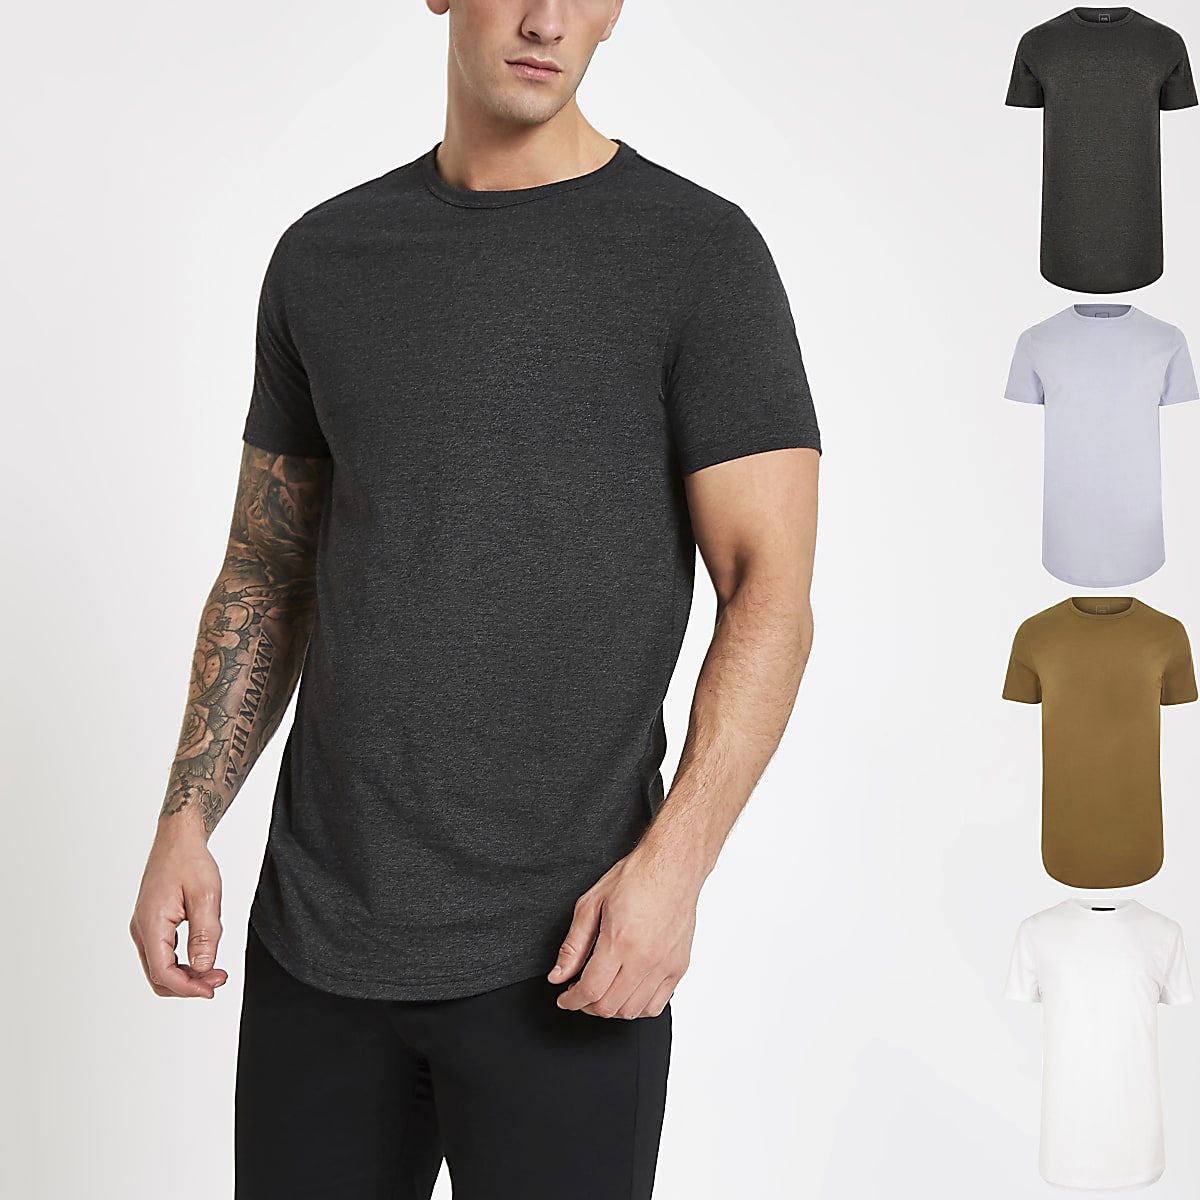 Multicolored curved hem T-shirt 5 pack